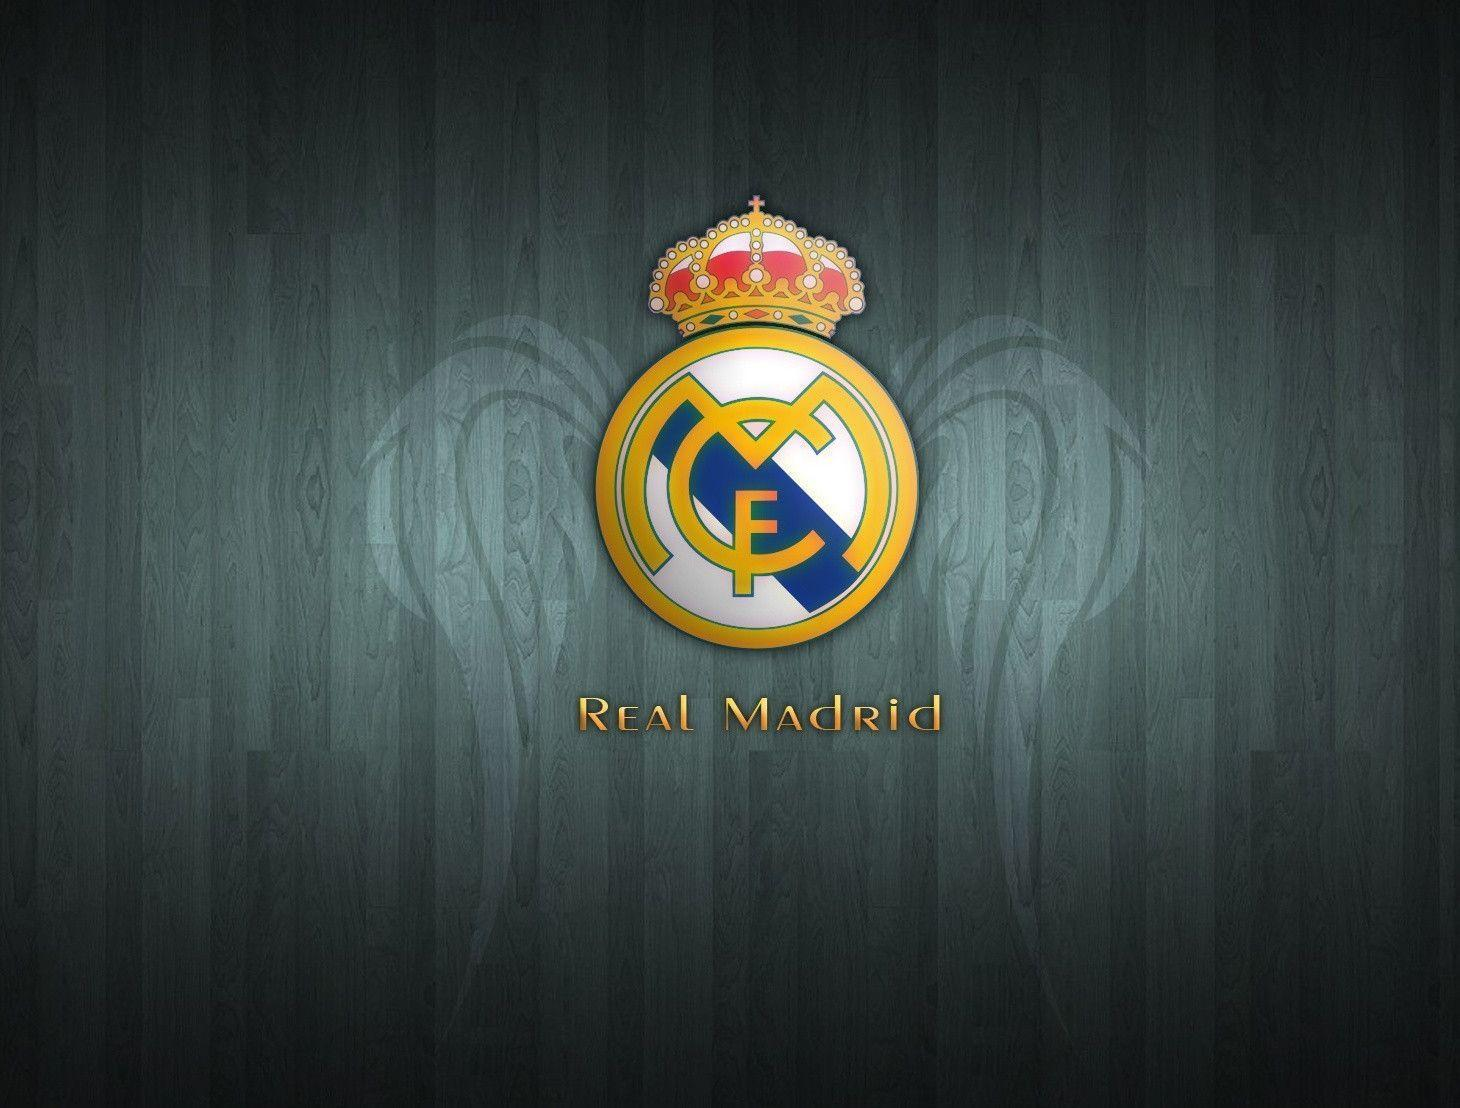 wallpapers hd for mac: Real Madrid Football Club Logo Wallpapers HD